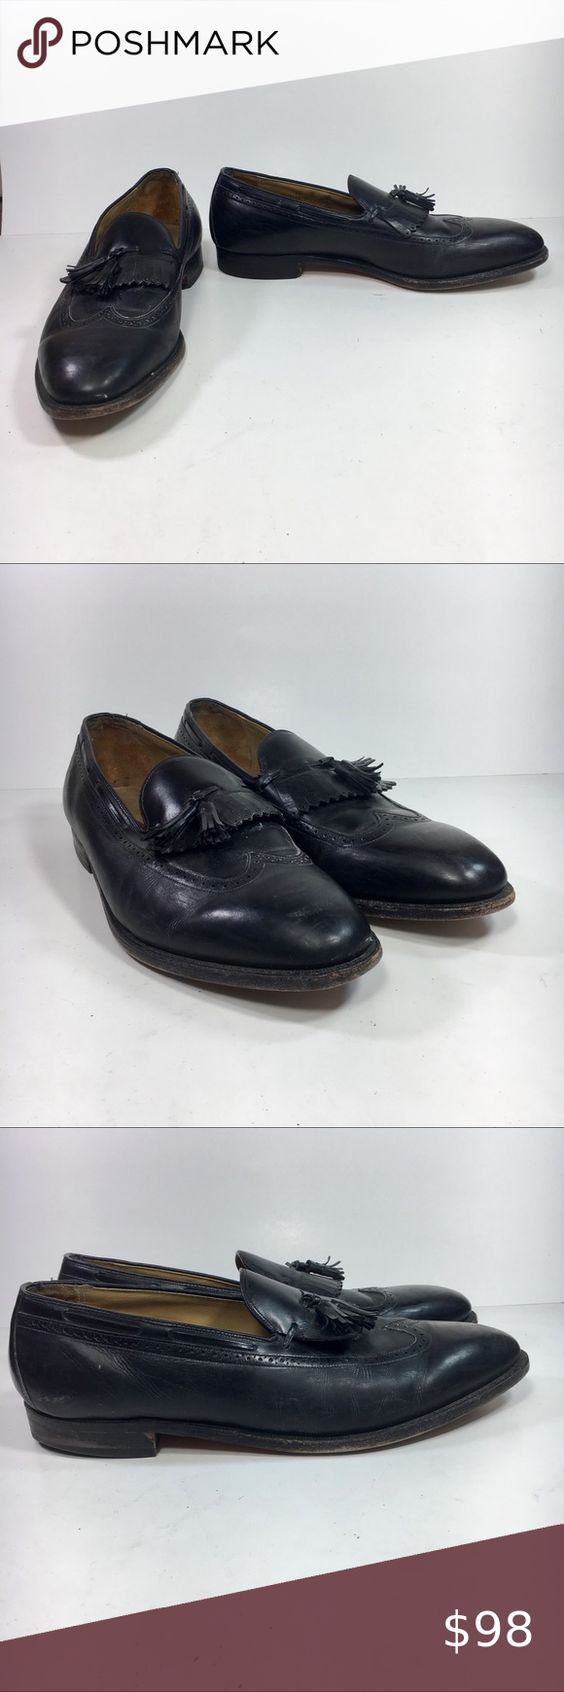 Johnston Murphy Aristocraft Men 15 Tassel Loafers Johnston Murphy Aristocraft Men 15 D Black Kiltie Tassel Wing Tip Loafer Shoes Preowned in okay condition with moderate scuffing around the toe area of the shoes and on the back of the heels. Johnston & Murphy Shoes Loafers & Slip-Ons